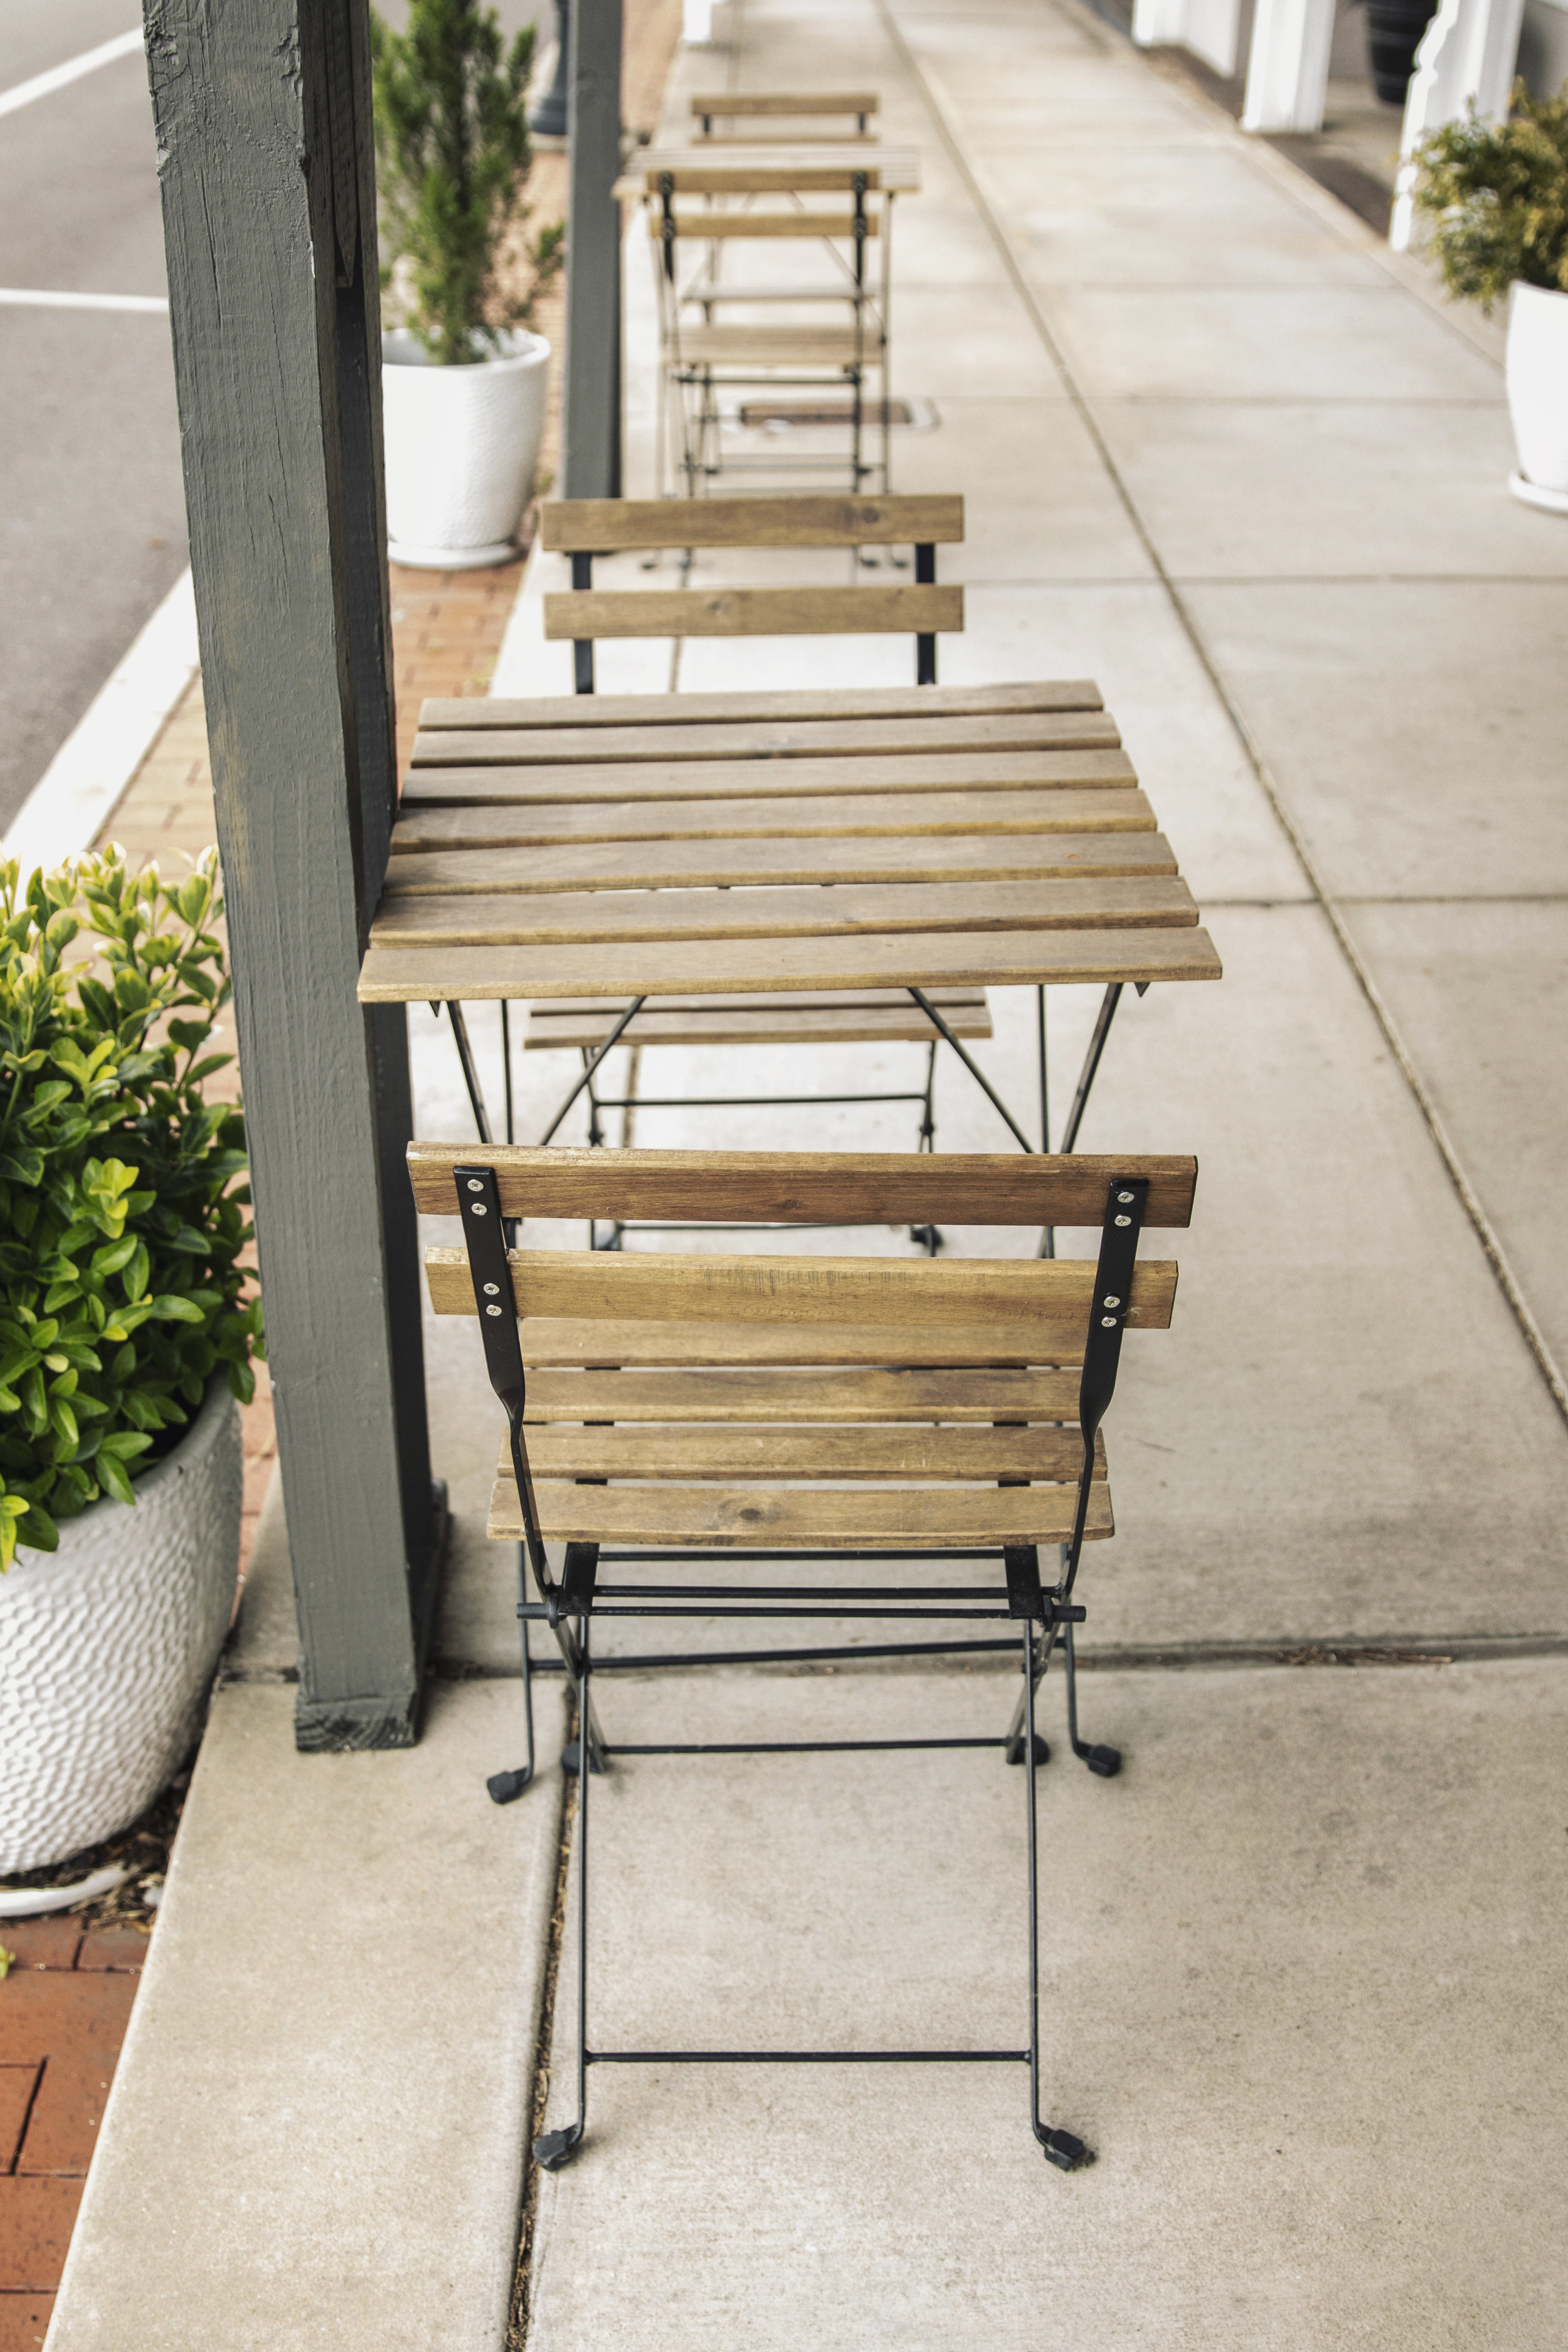 Outside Chairs2.jpg